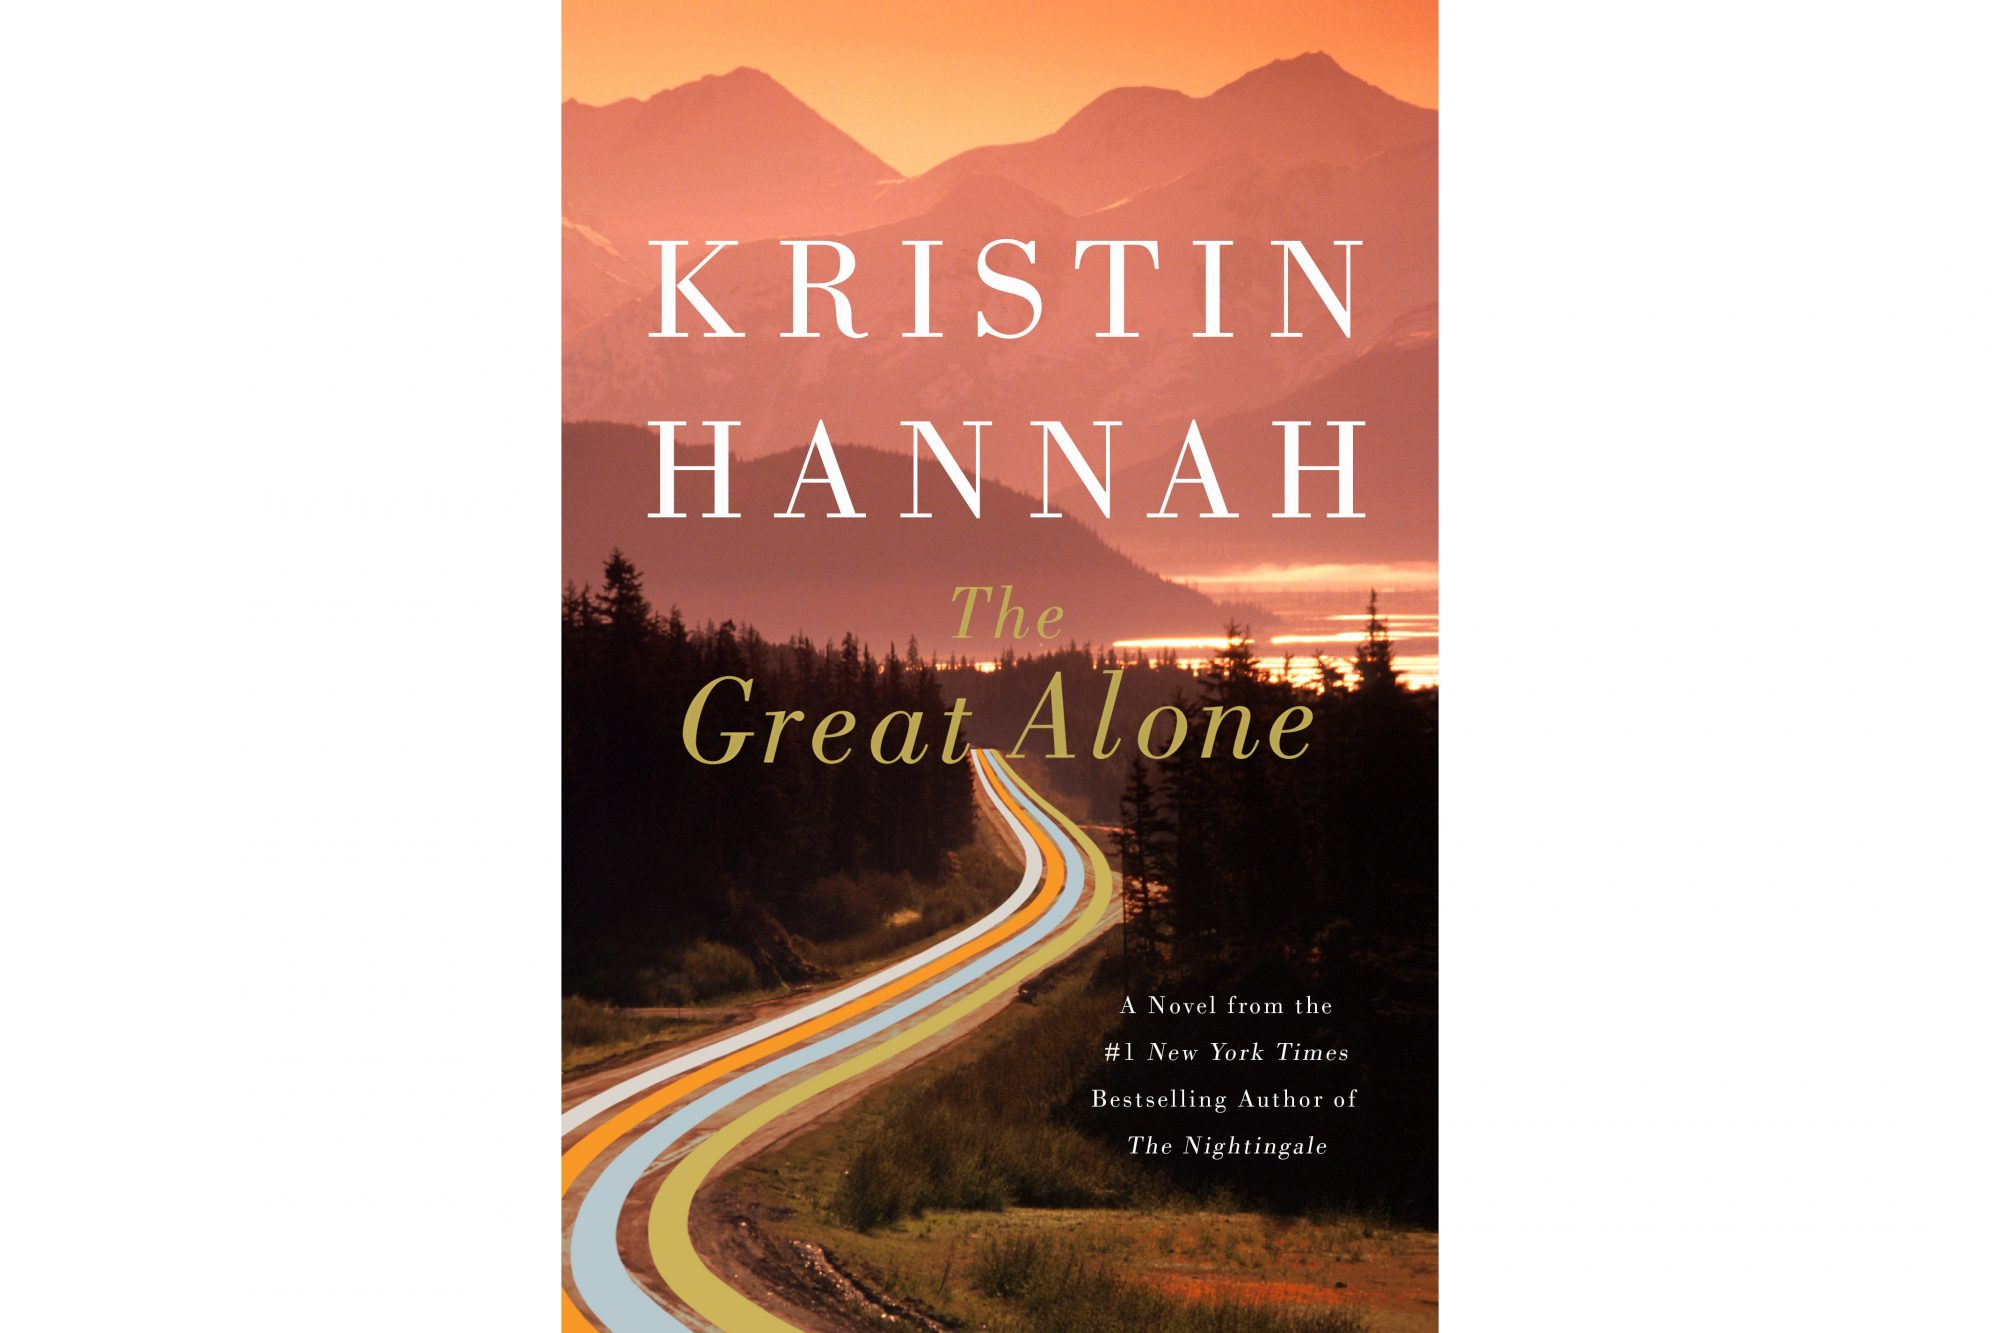 The Great Alone, by Kristin Hannah (FB READS)